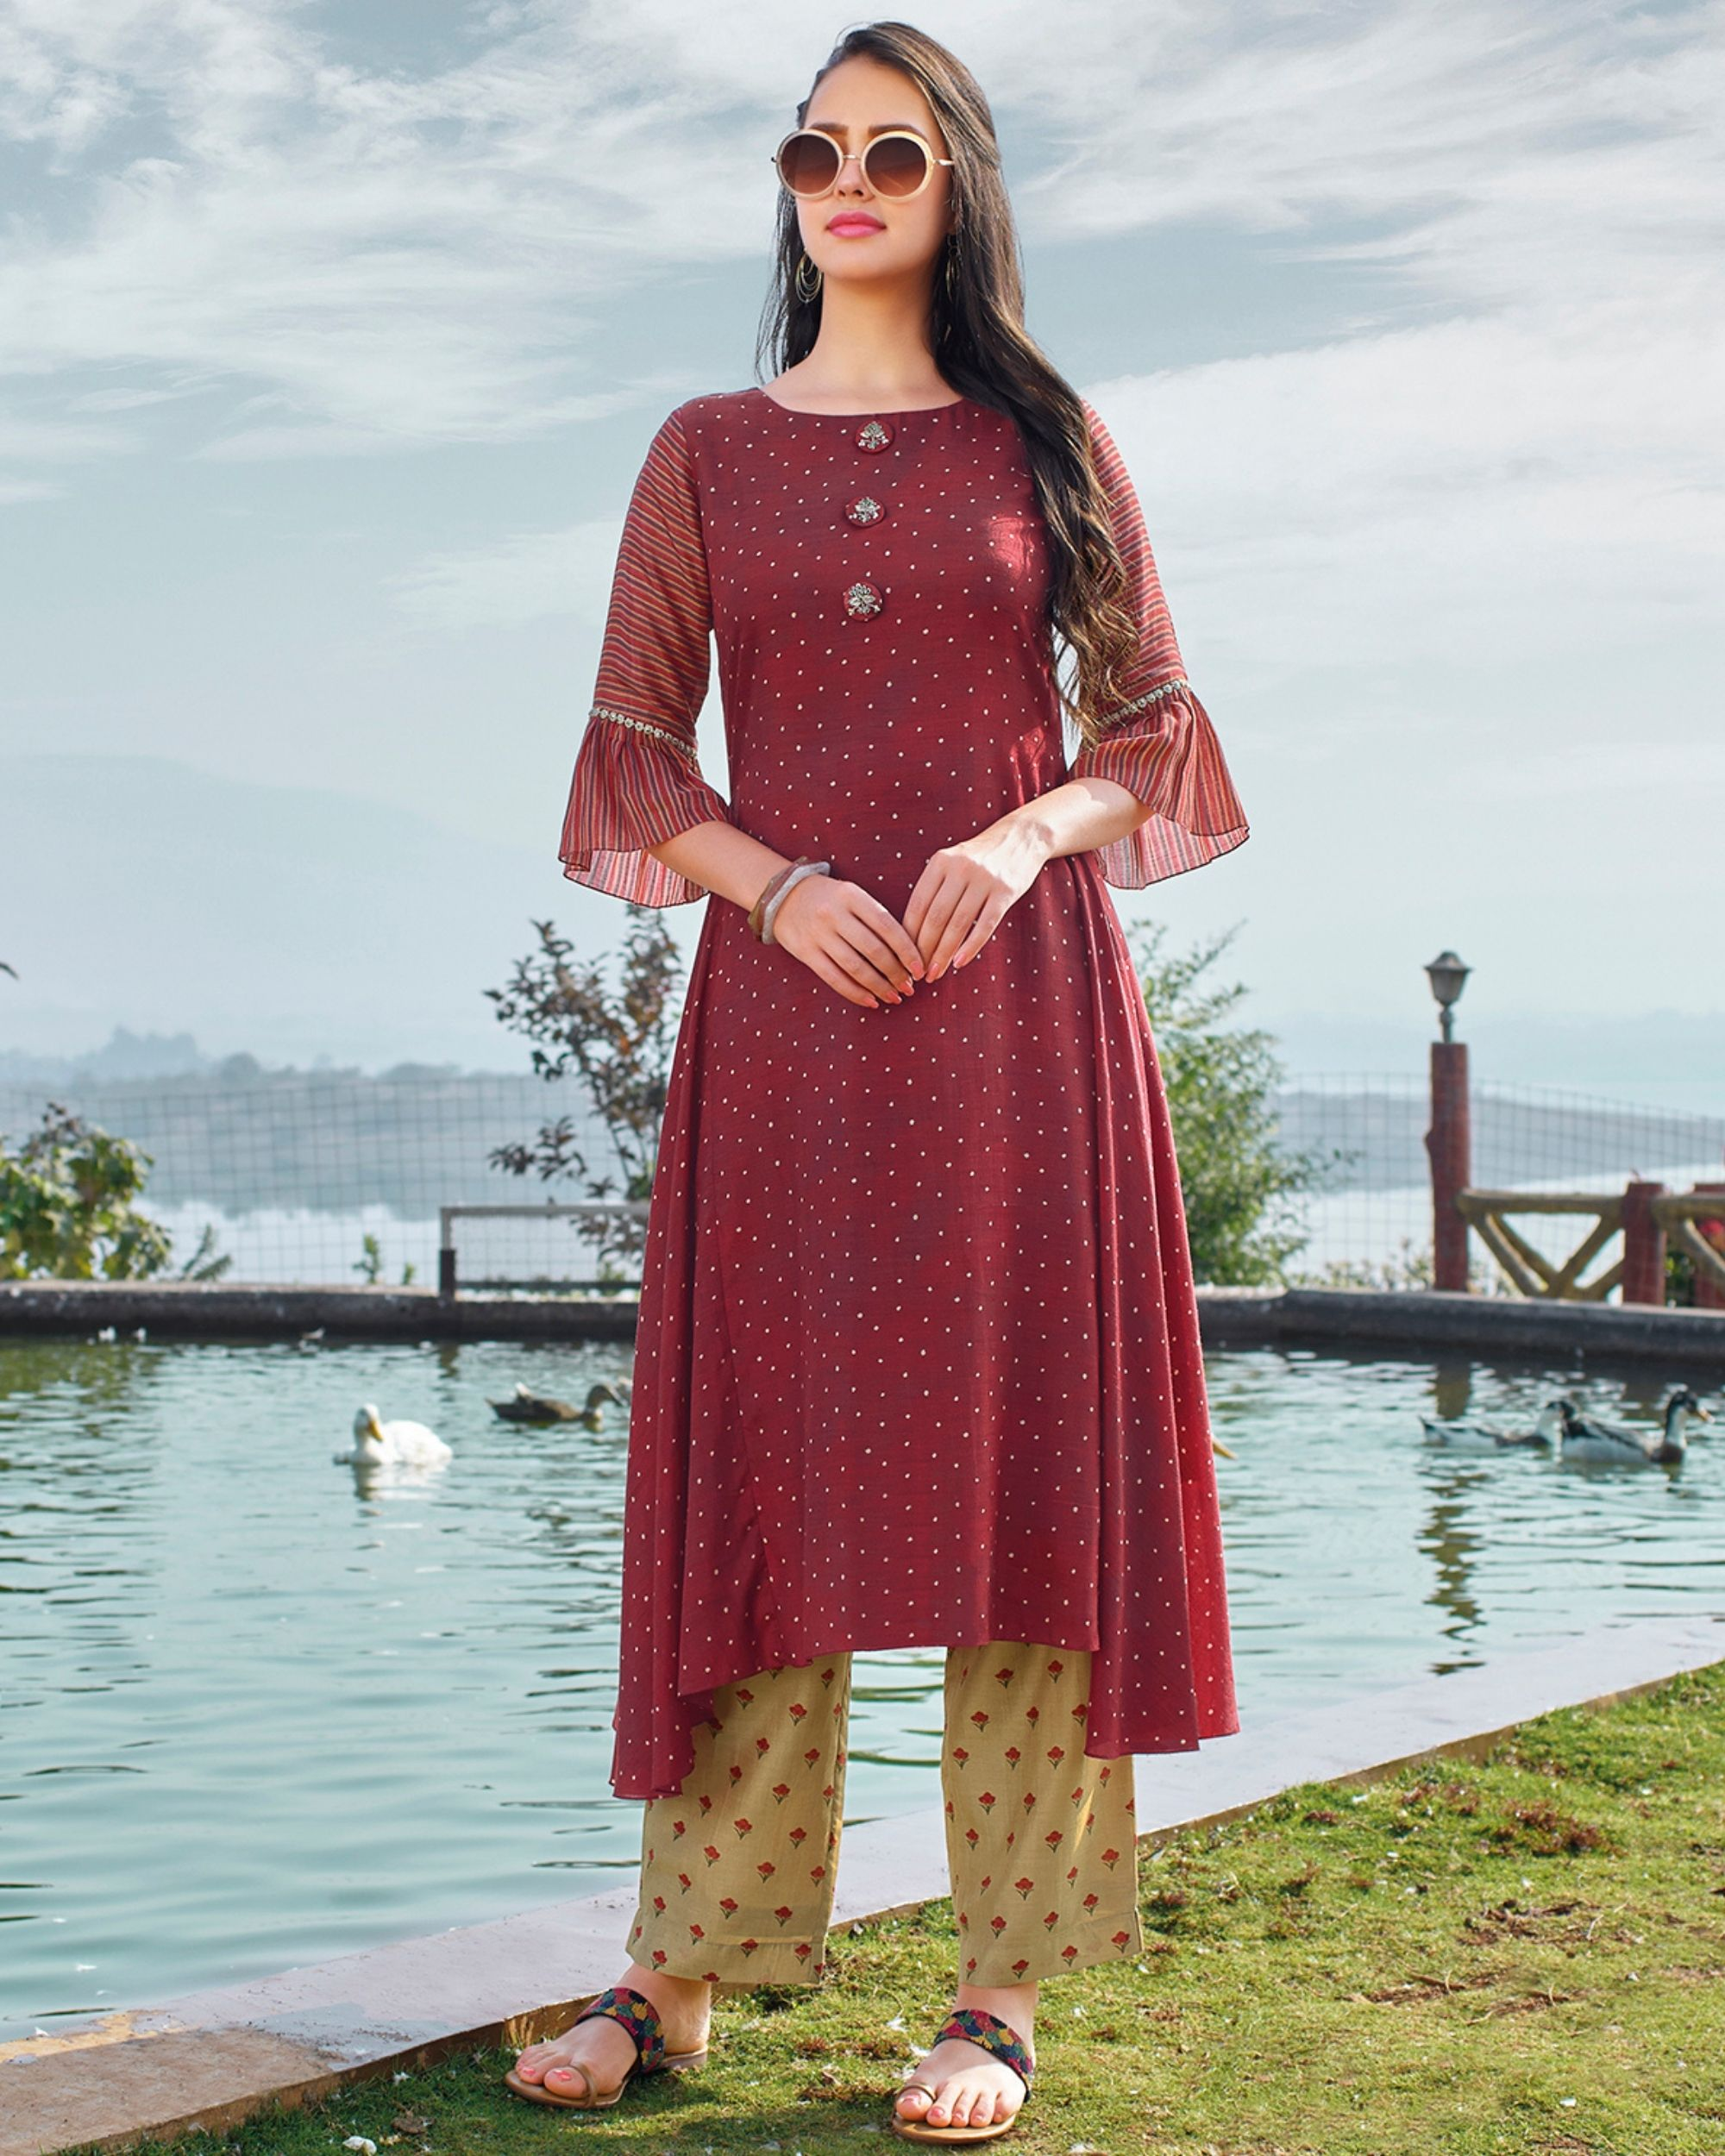 Maroon digital printed hand embroidered kurta and beige pants - set of two